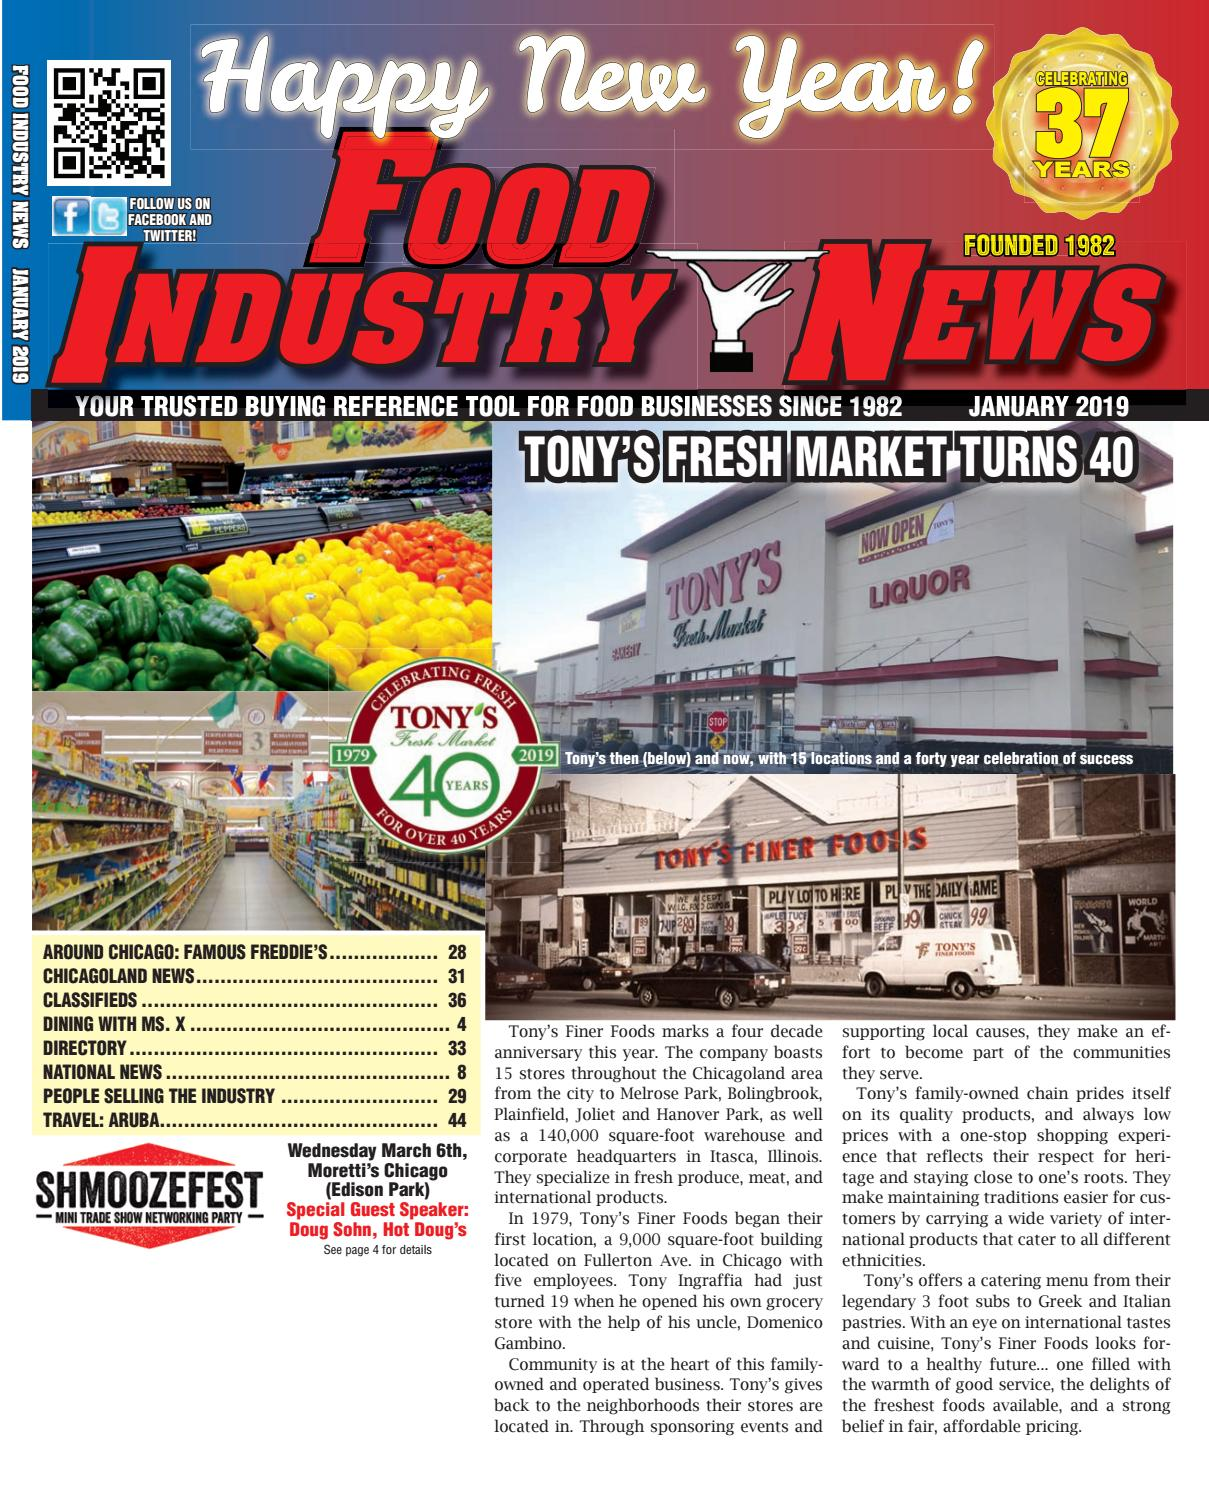 Food Industry News January 2019 WEB EDITION by